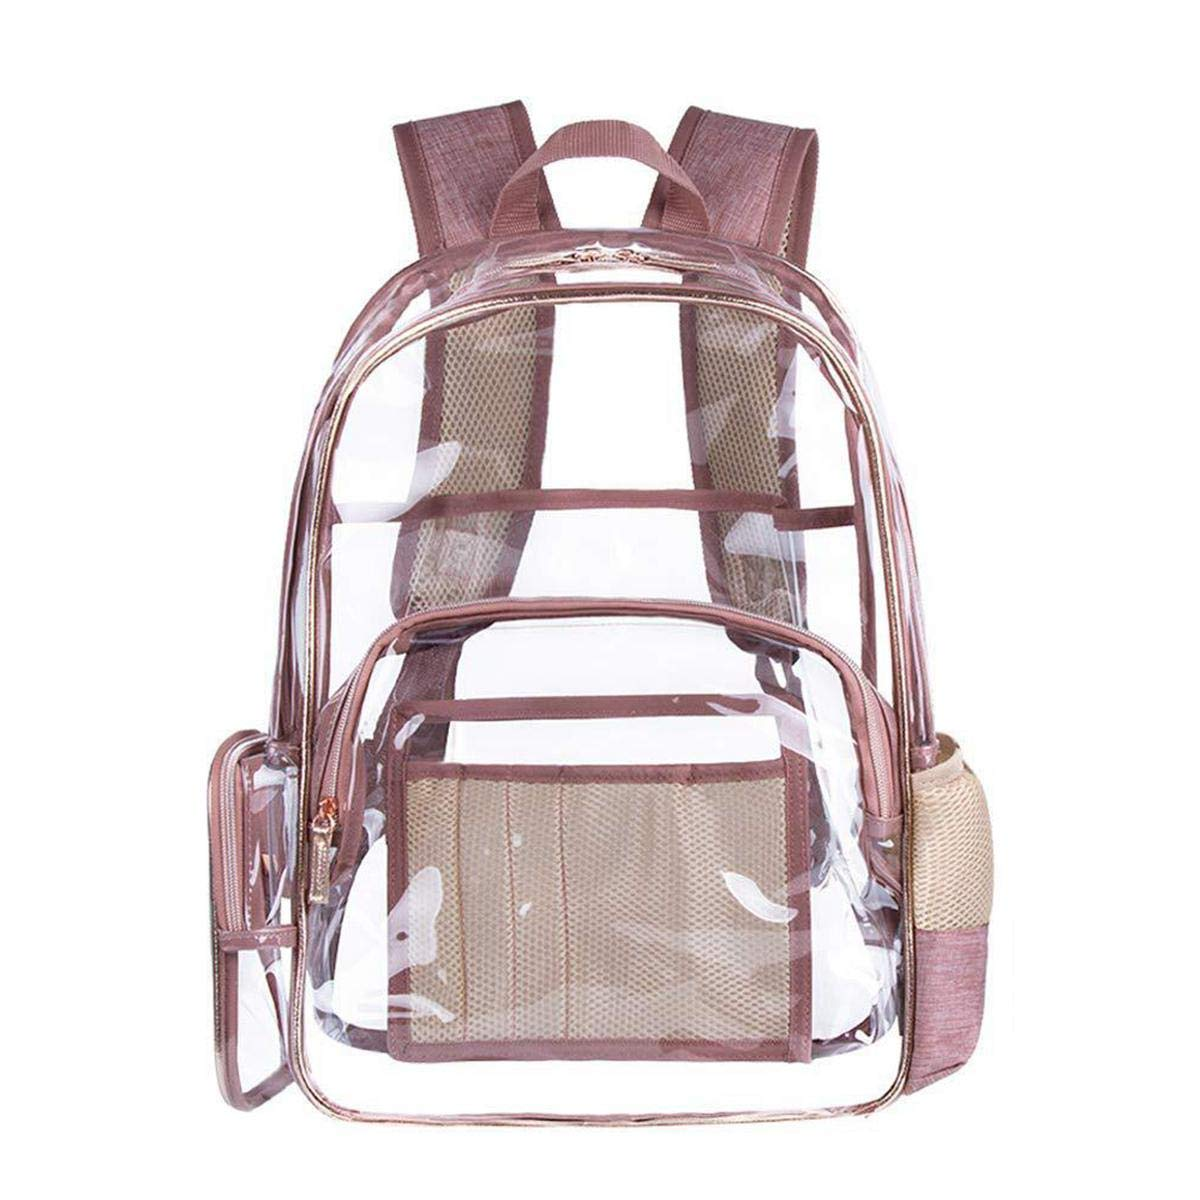 PVC Clear Backpack for Adults, Transparent Heavy Duty School Backpack/Outdoor Backpack Fit 15.6 Inch Laptop, Safety Travel Rucksack with Multi Pockets and Adjustable Wide Mesh Straps